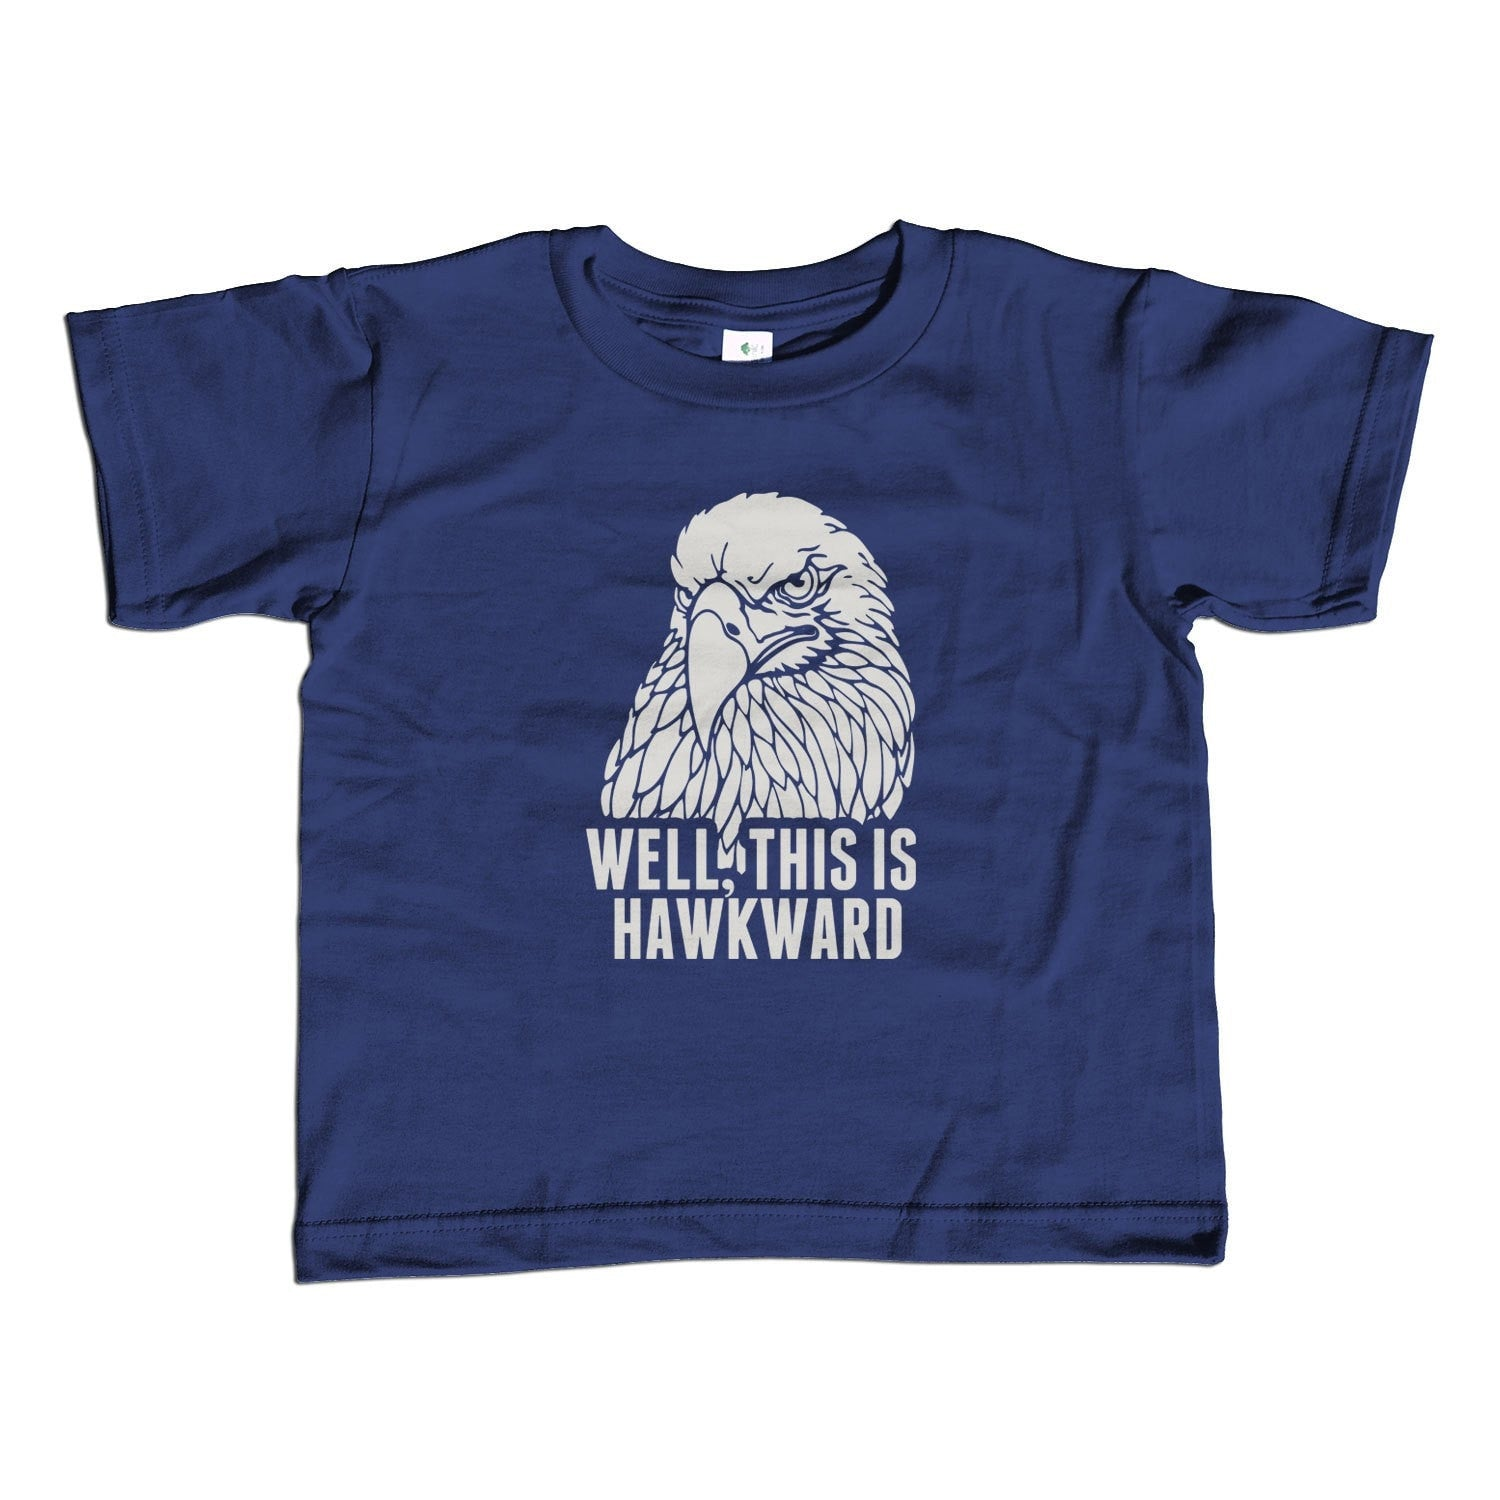 Girl's Well This is Hawkward T-Shirt - Unisex Fit Funny Bird Shirt